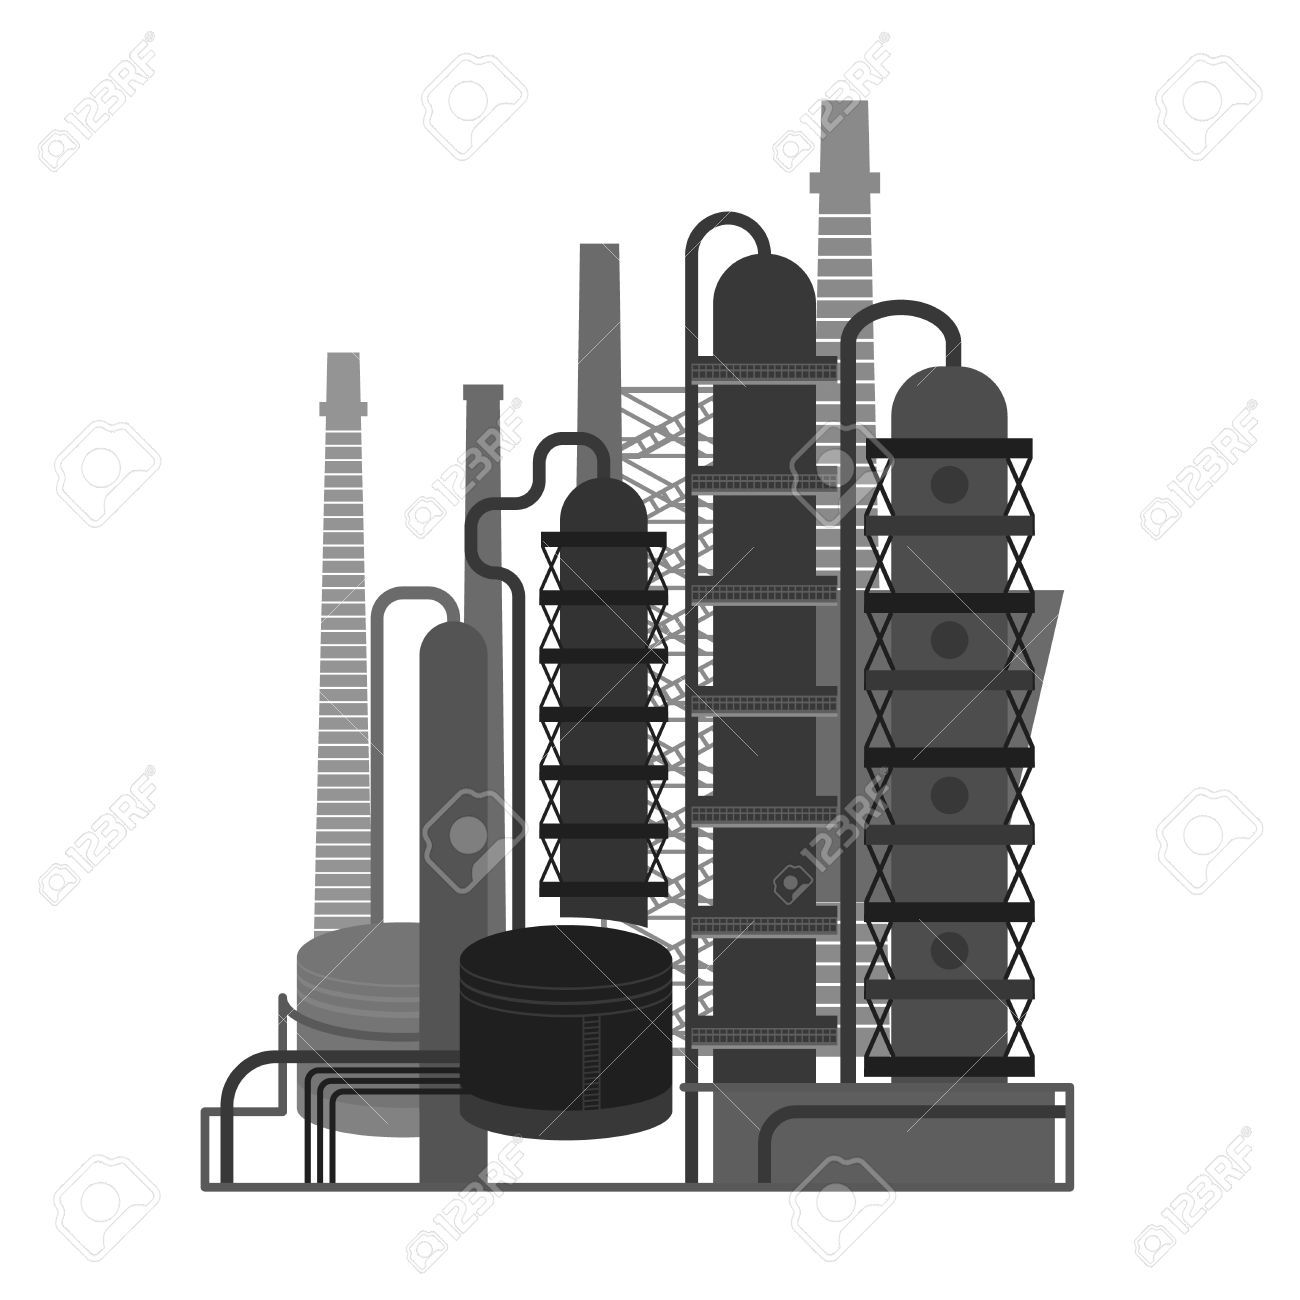 Oil plant clipart picture library download Oil Plant 06 A » Clipart Portal picture library download